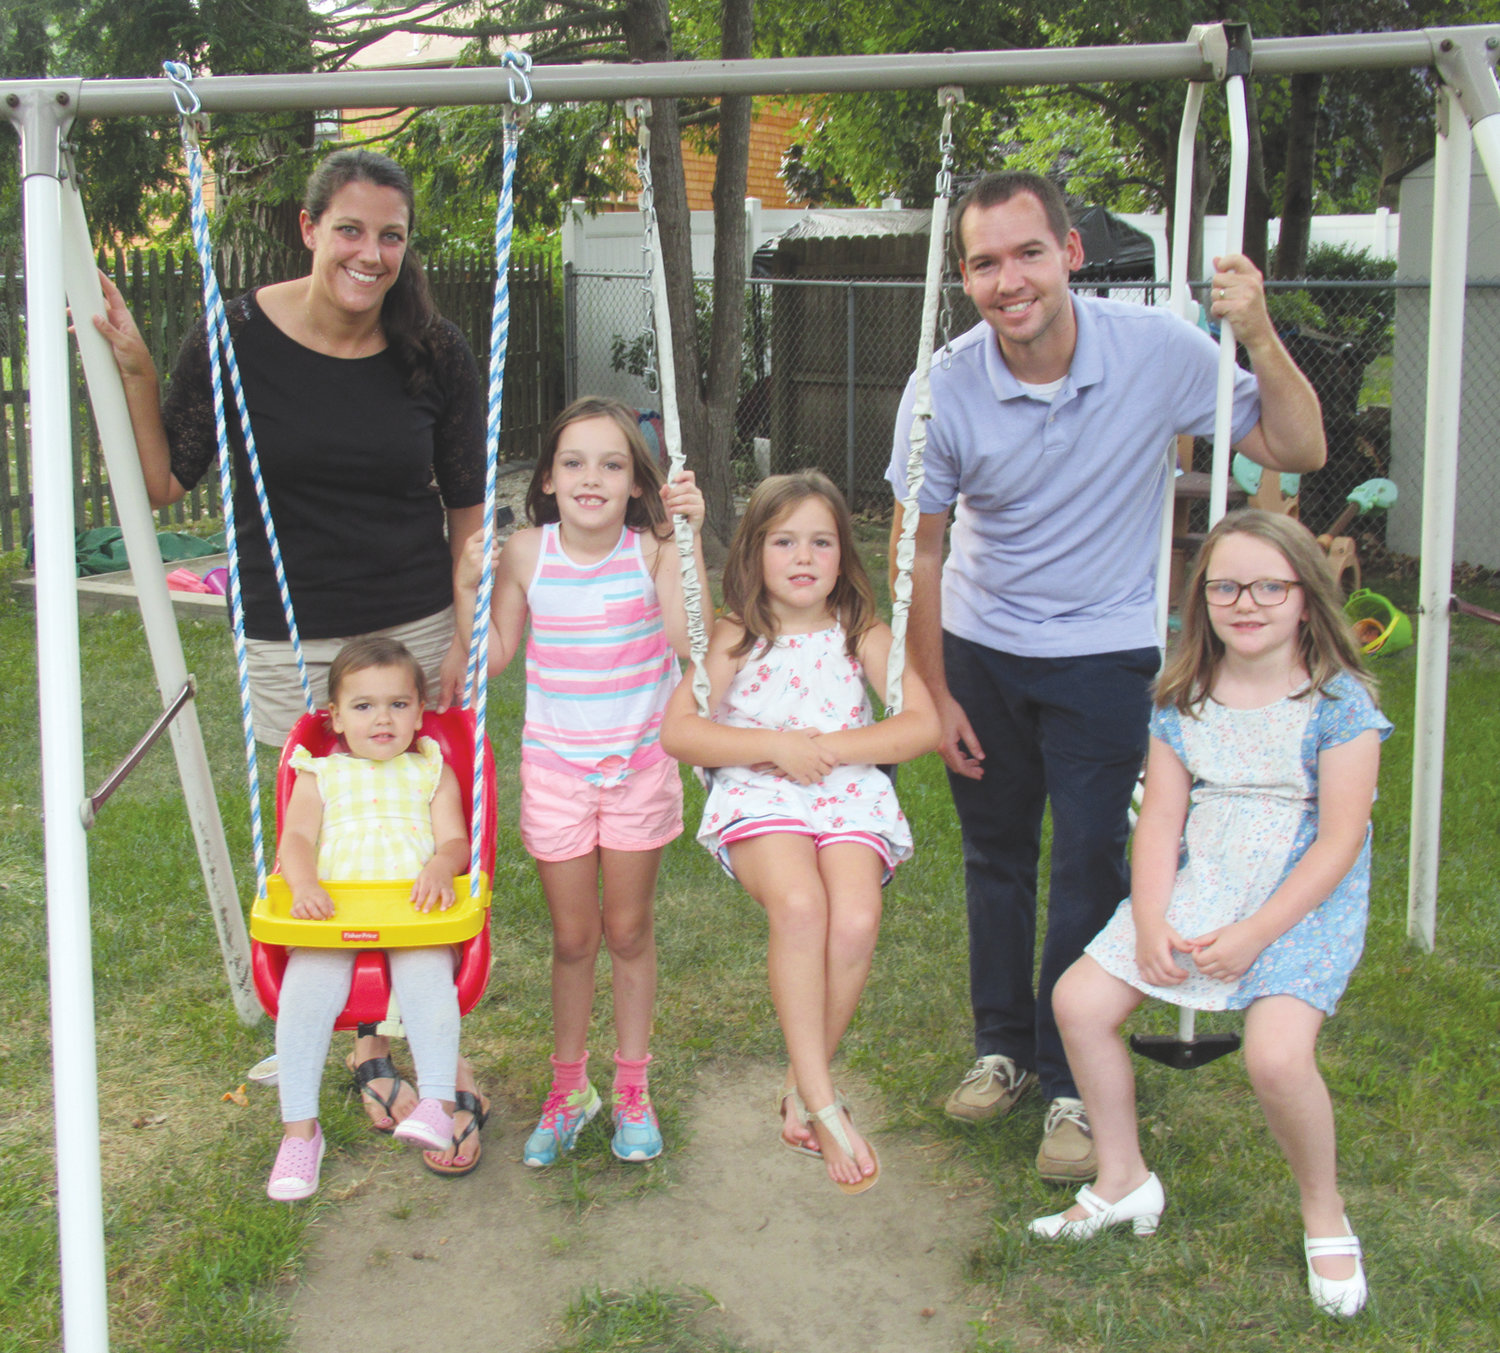 FAMILY FUN: Matthew Yates, the new principal at Winsor Hill Elementary School, and his wife, Jackie, spent time Tuesday evening on the family swing set in Warwick prior to taking daughters Adelynn, Grace, Vivian and Claire for some ice cream.